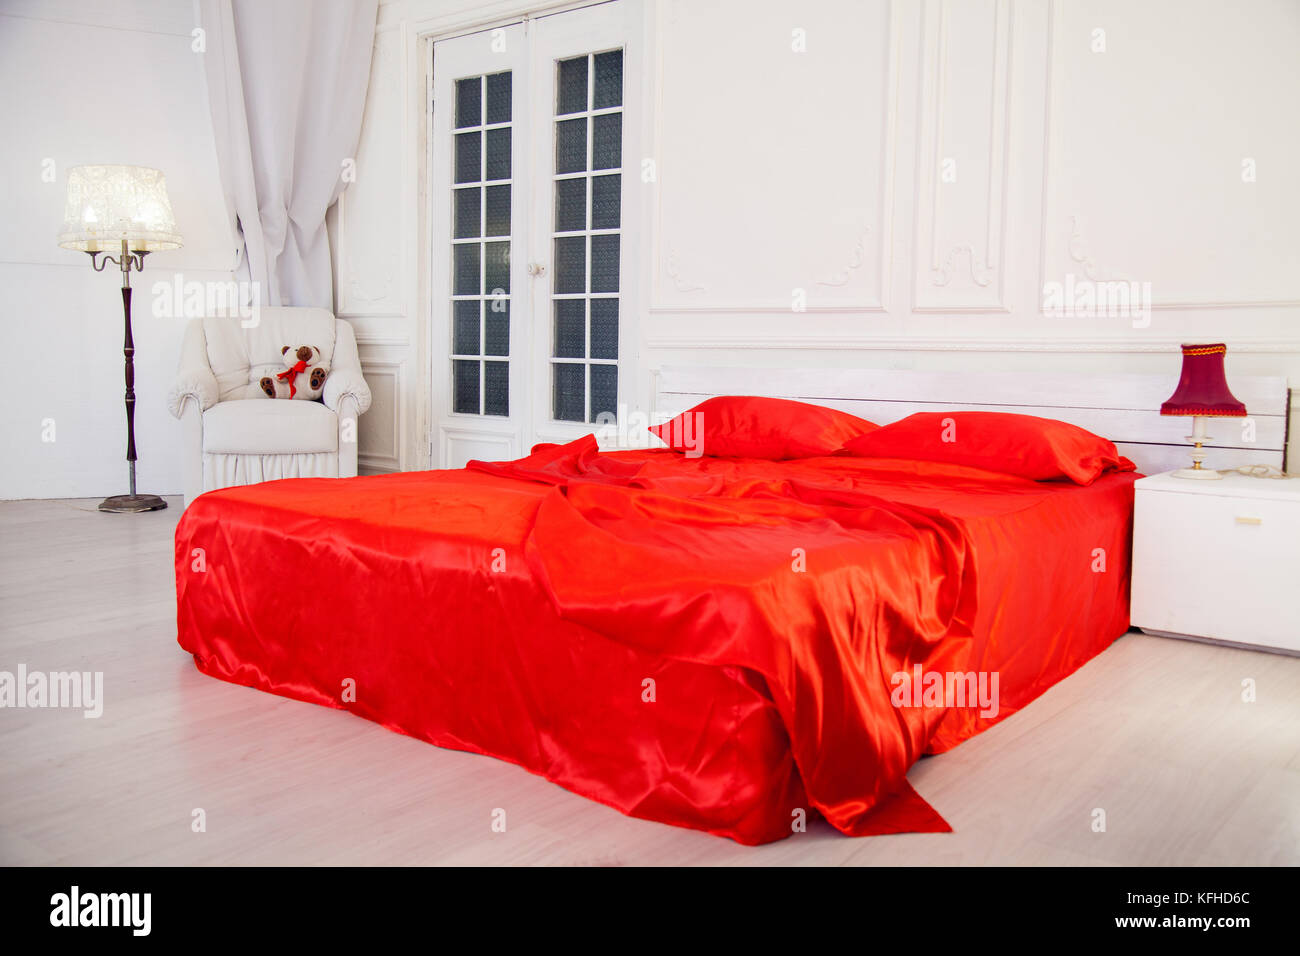 Bed With Red Sheets In White Bedroom Interior   Stock Image